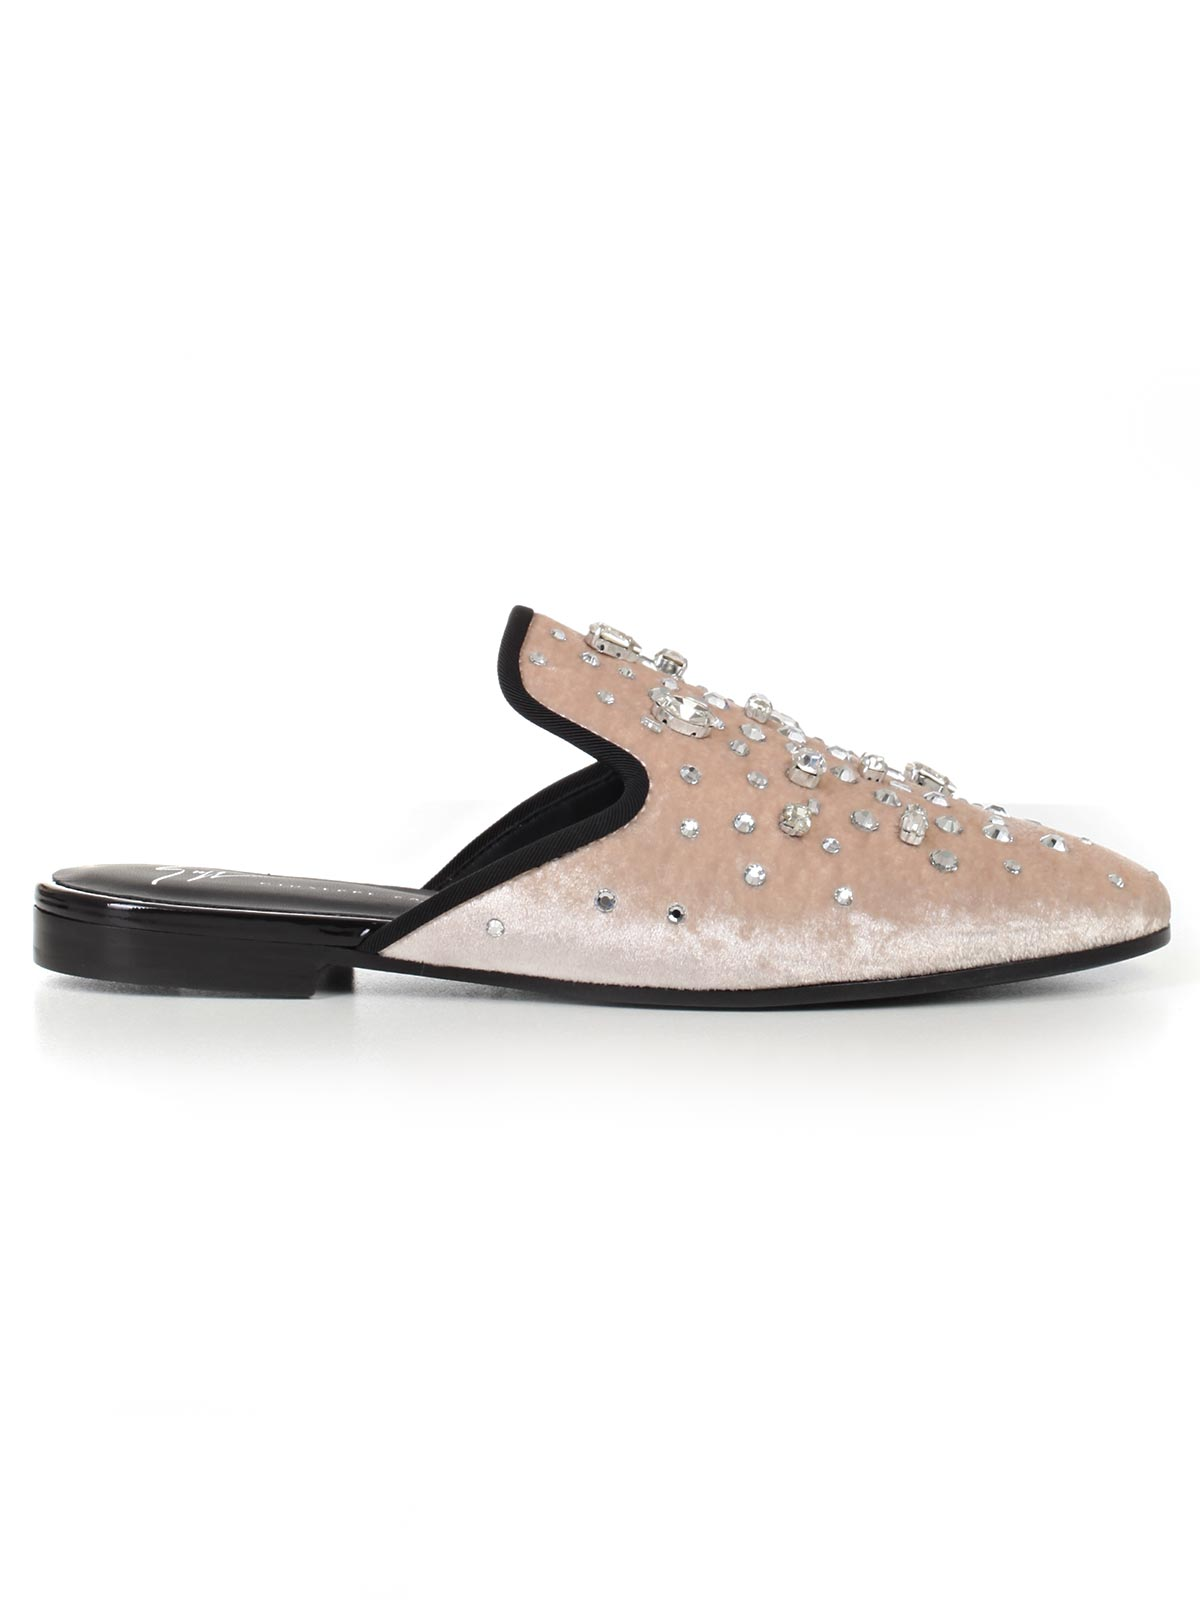 Picture of GIUSEPPE ZANOTTI Slippers